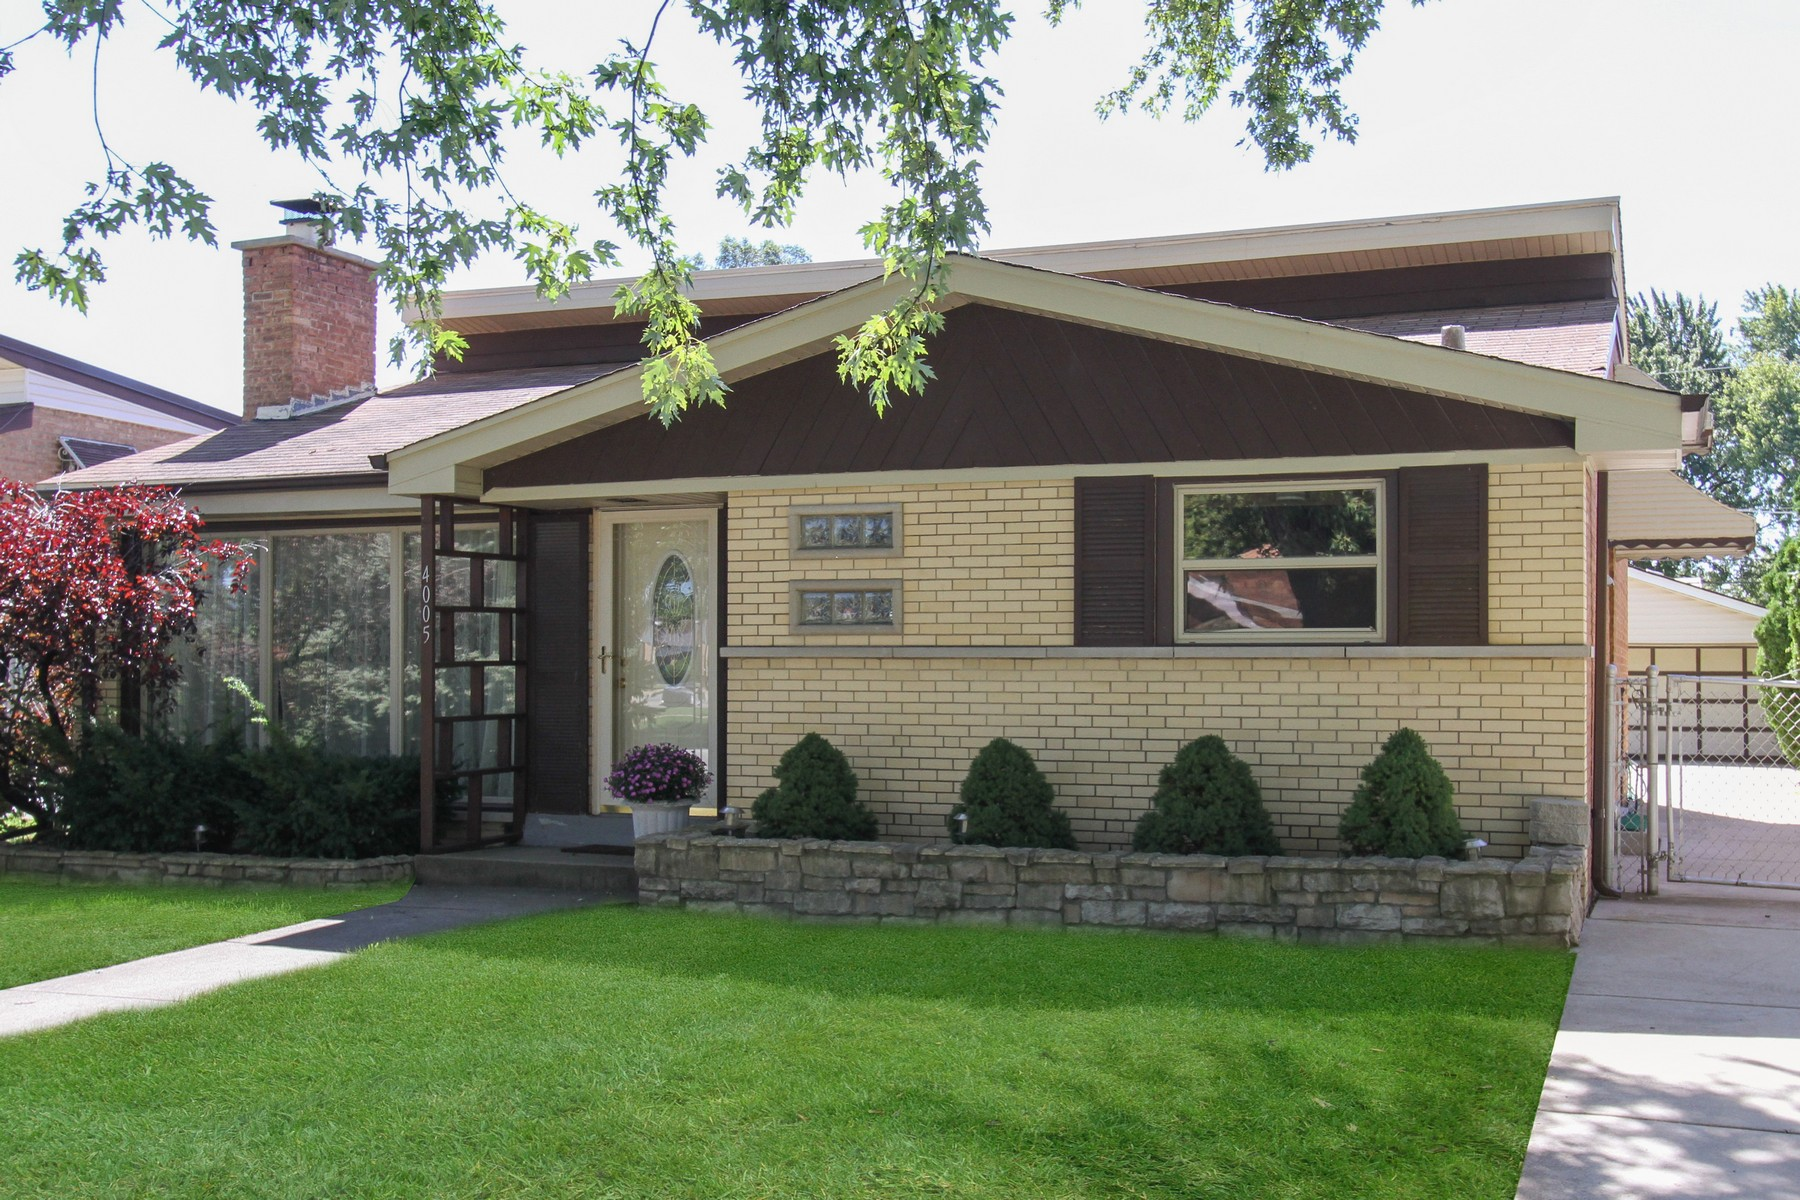 Villa per Vendita alle ore Immaculate Mid-Century Tri-Level Home 4005 W 106th Street Oak Lawn, Illinois, 60453 Stati Uniti